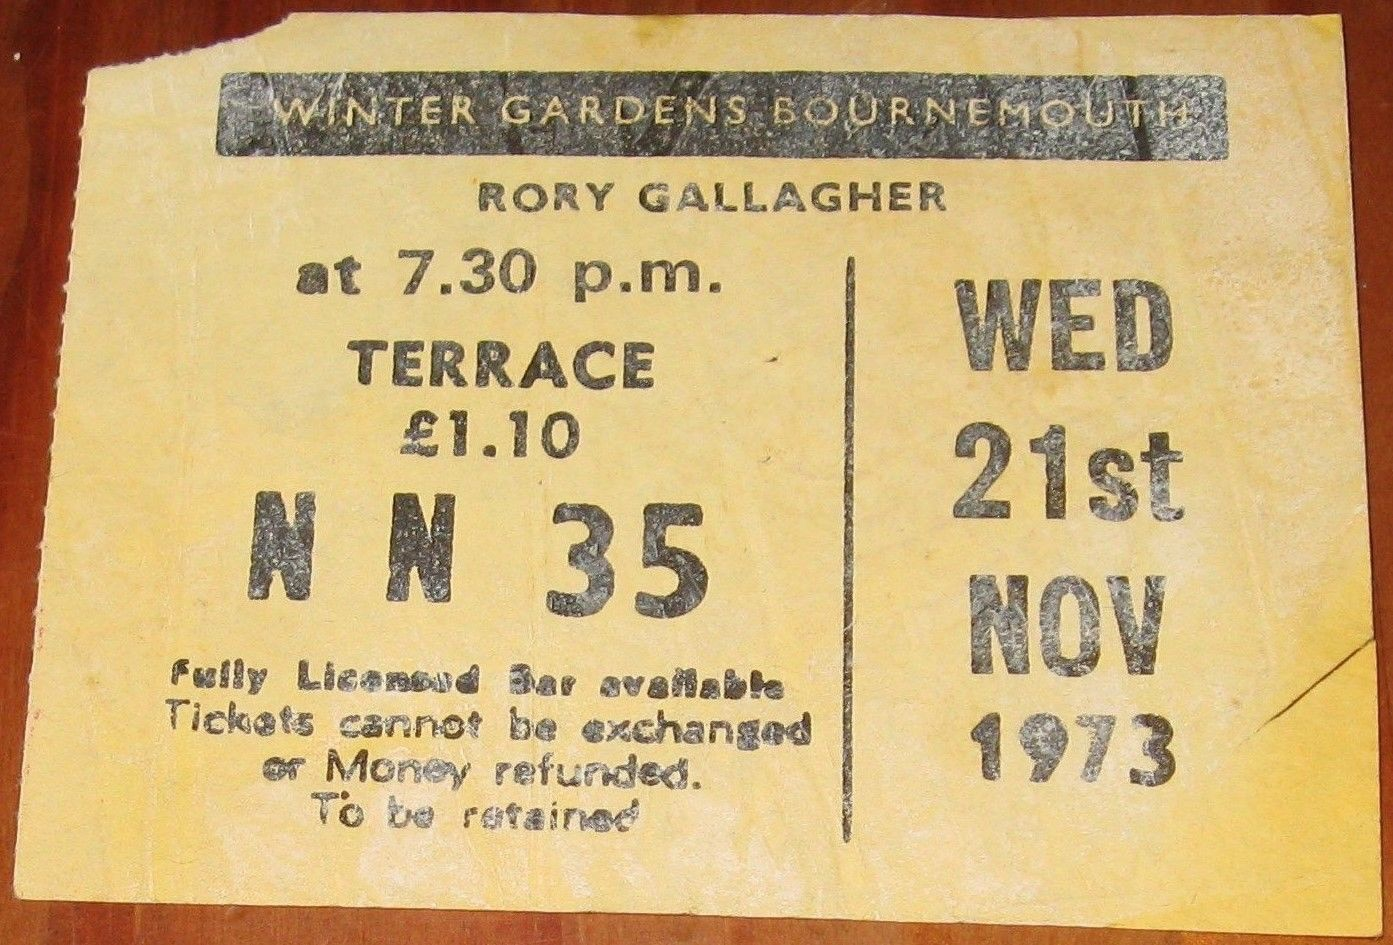 november 21 1973 winter gardens bournemouth eng concerts wiki